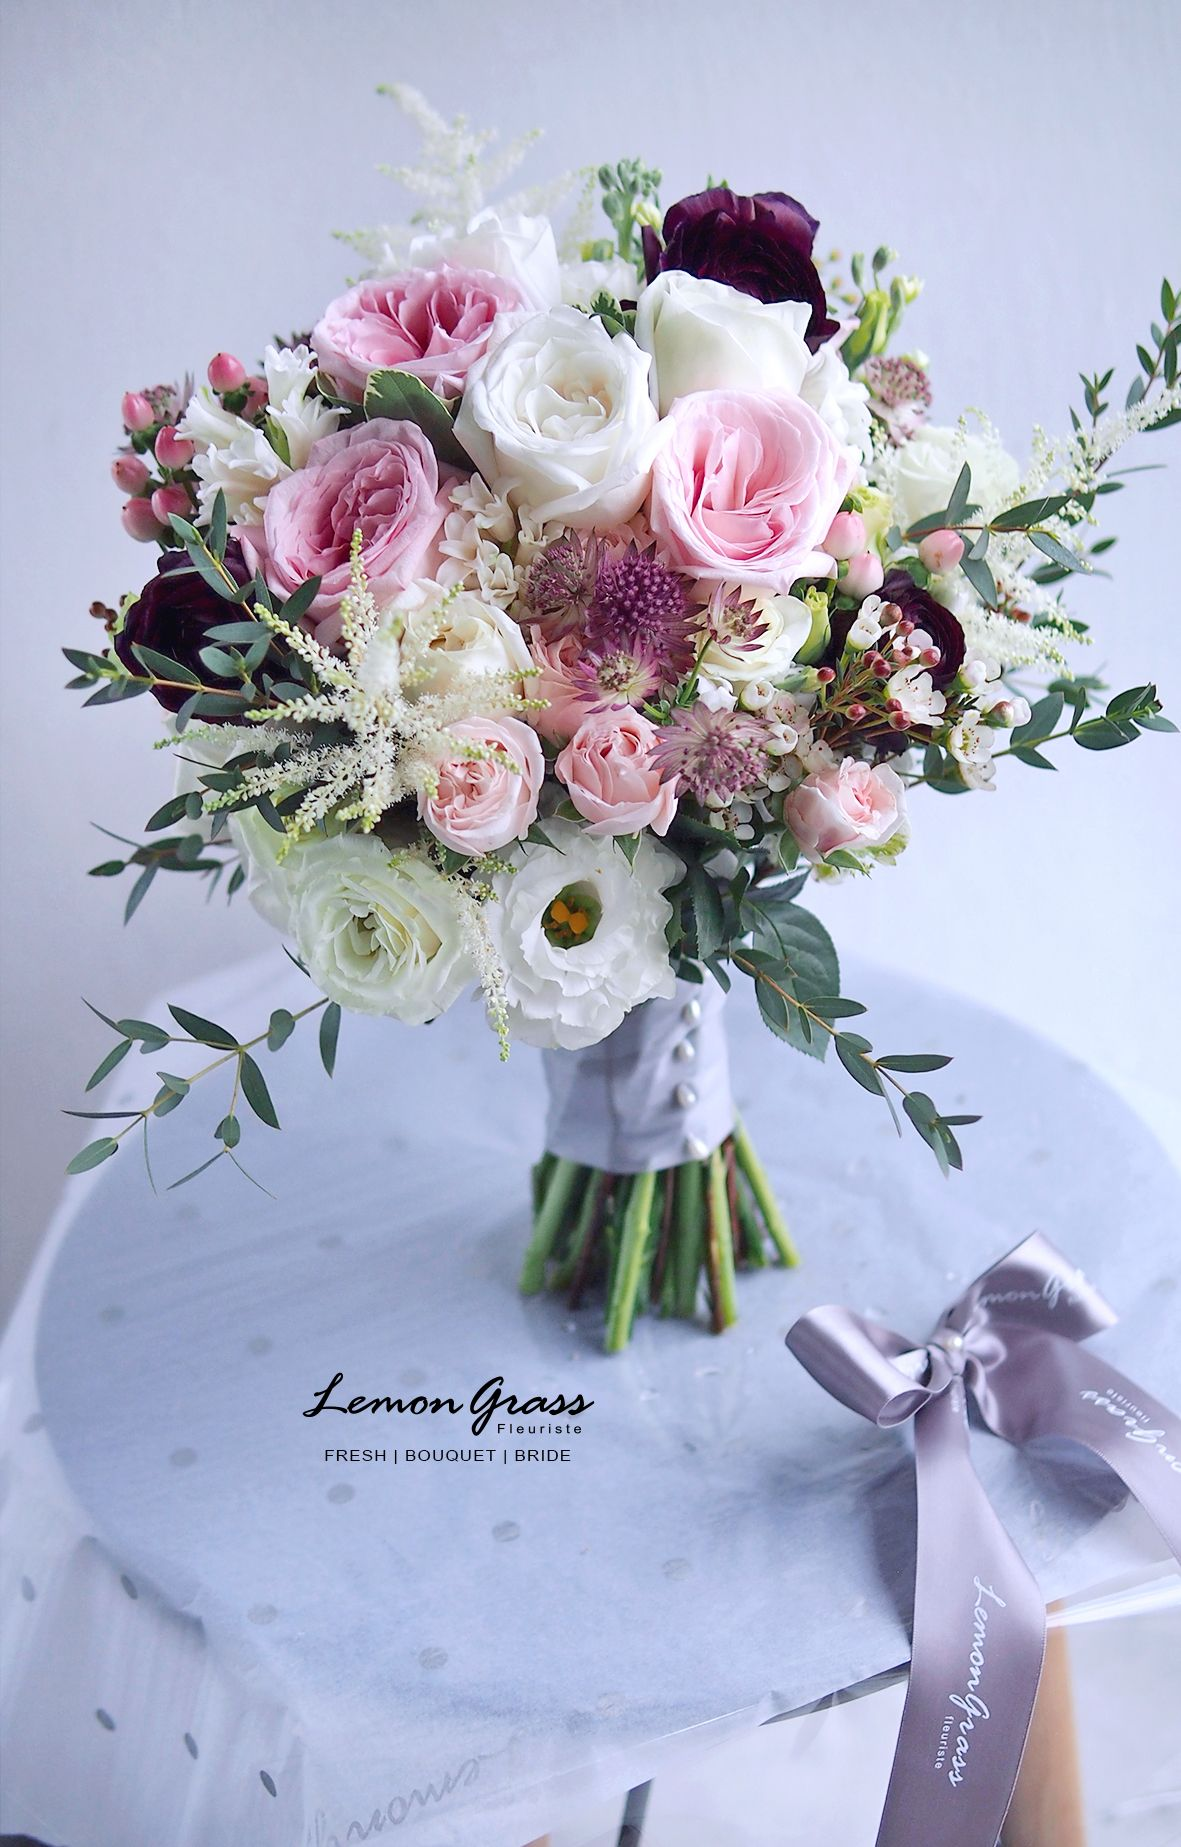 Pin by hsim on 부케  Pinterest  Flowers Flower and Bridal bouquets